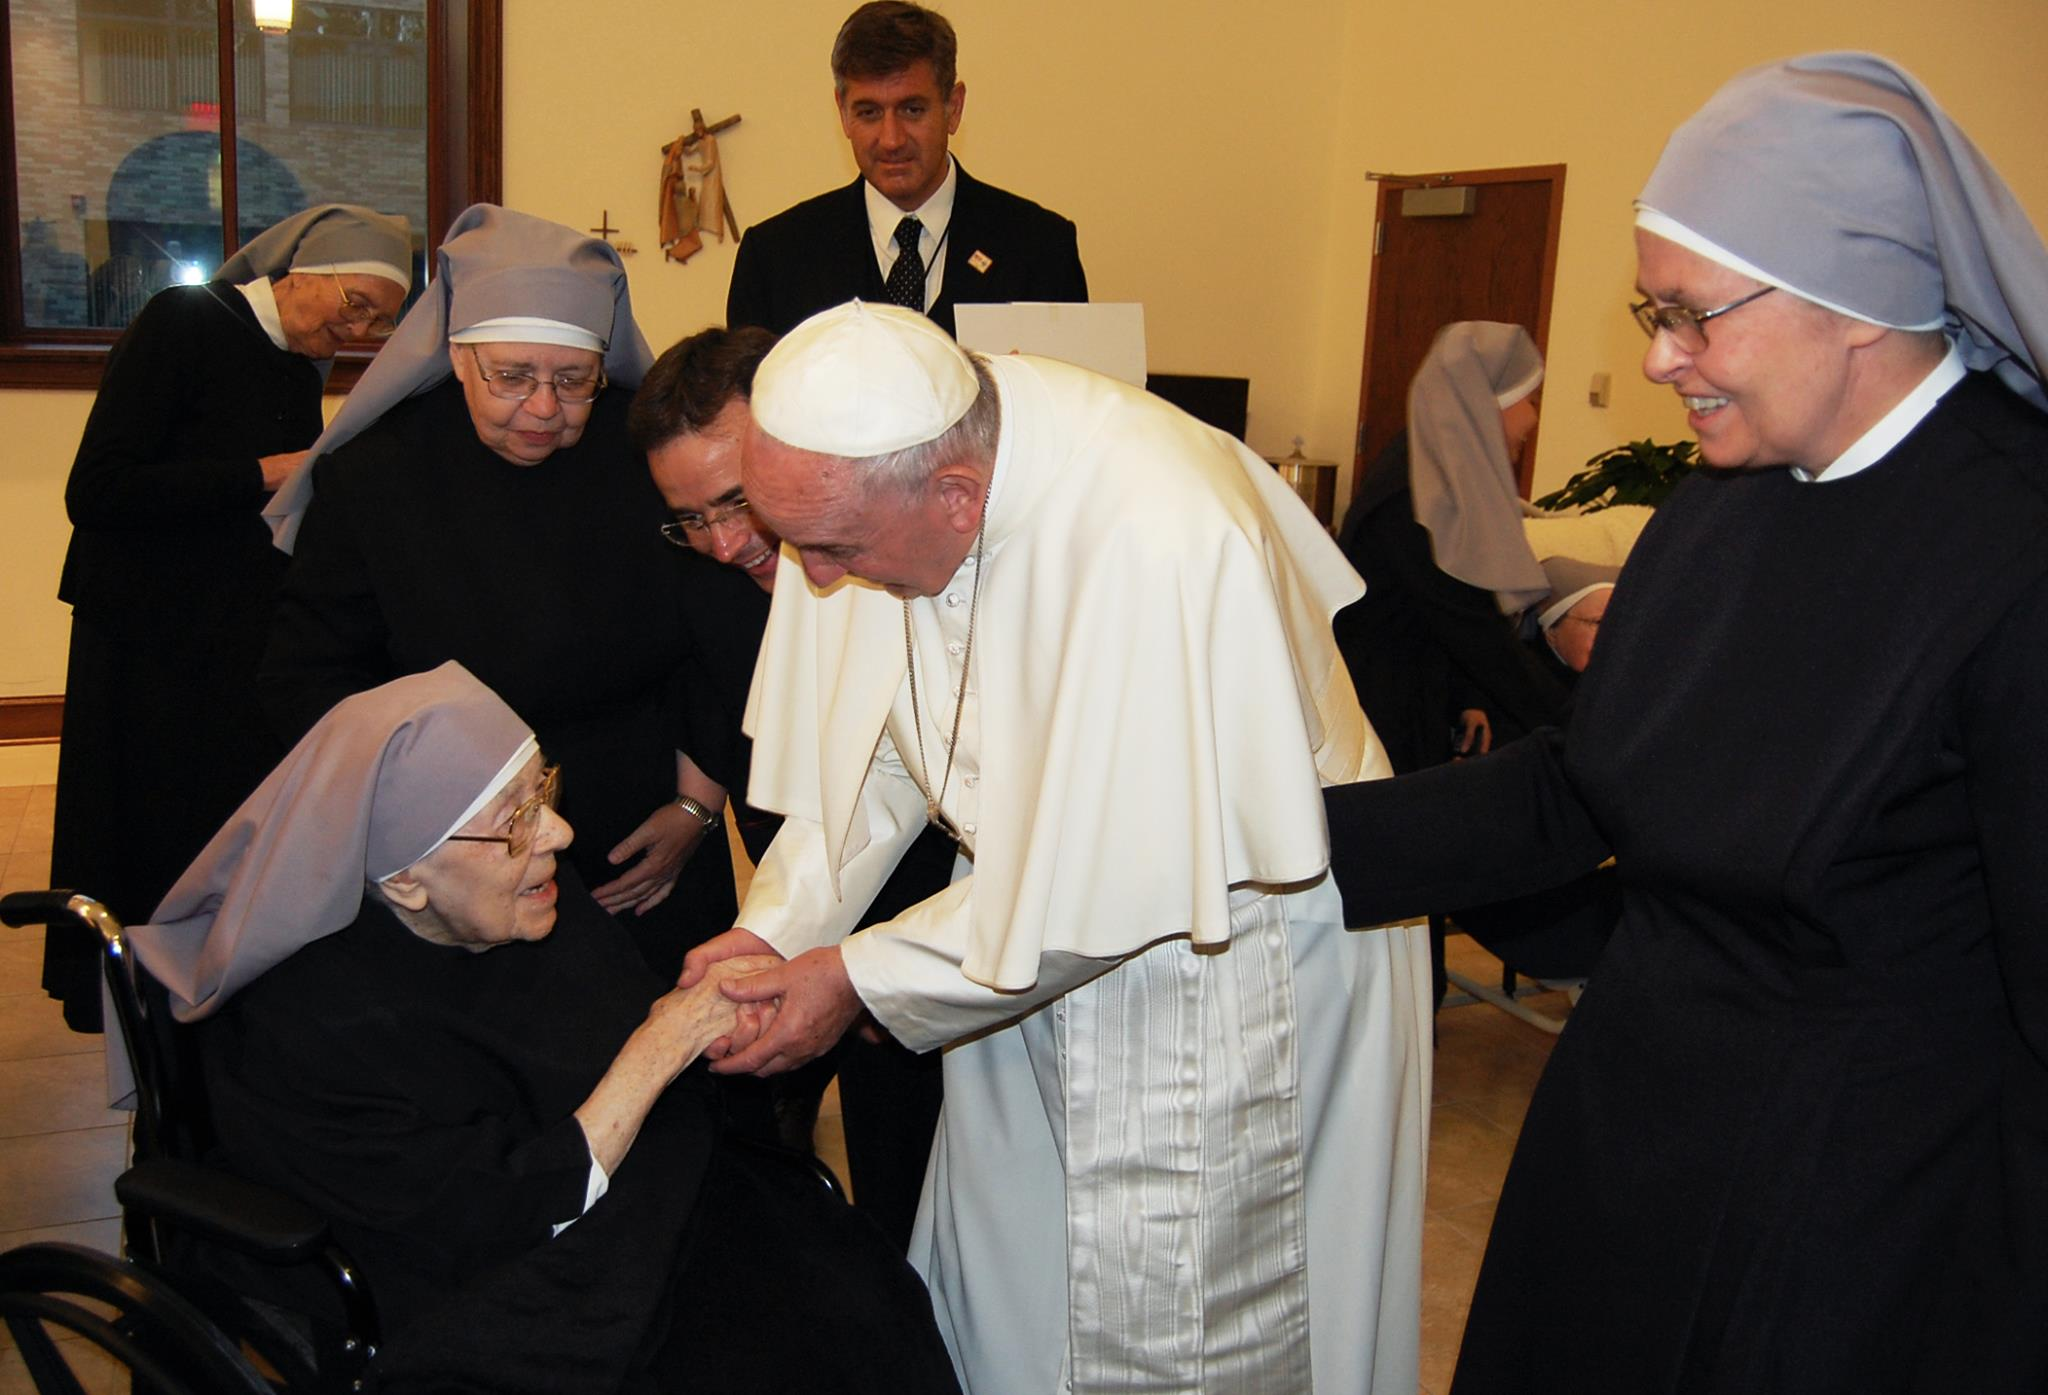 Pope Francis Greets the Little Sisters of the Poor in D.C.